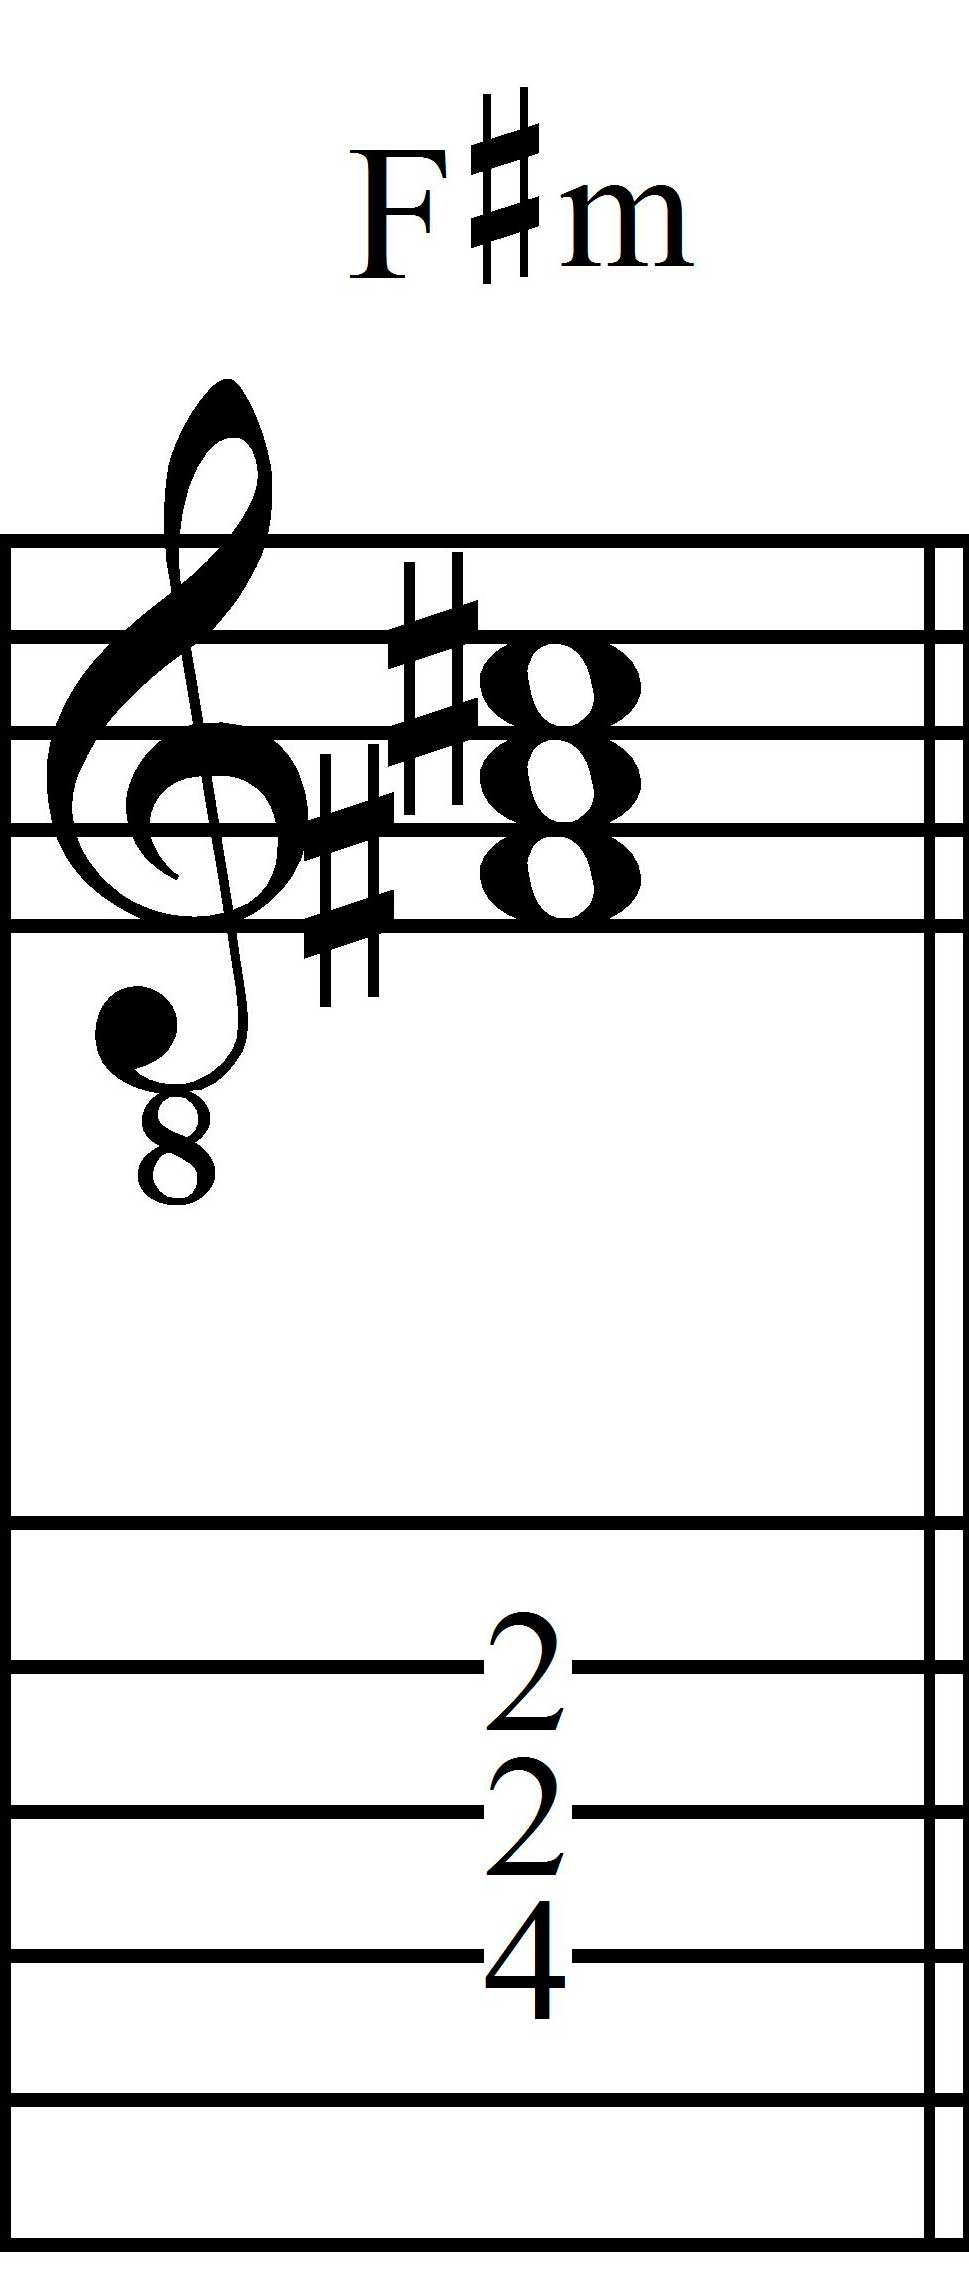 Jla music minor seventh flat five chords create a minor triad start with a root pitch then add a second a note a minor third higher three half steps followed by a third note a major third hexwebz Gallery